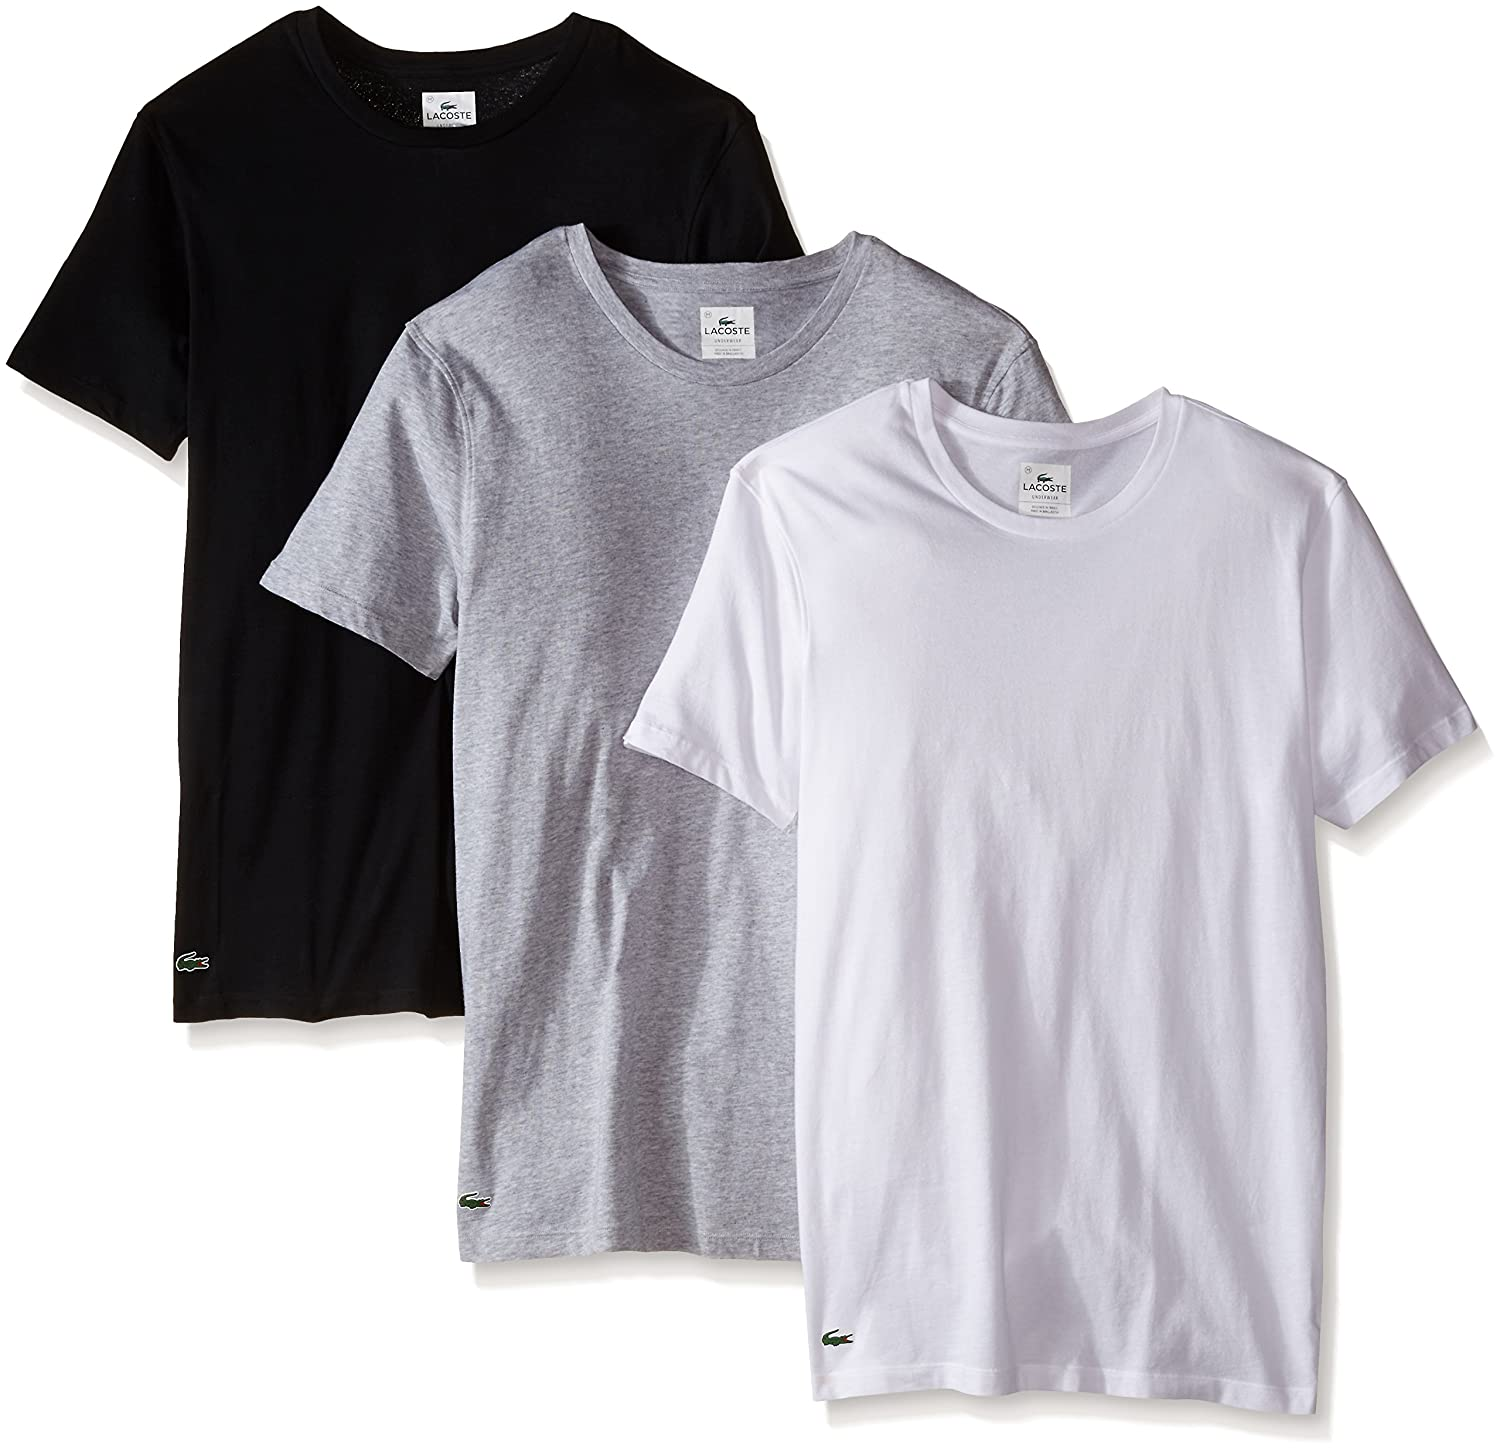 T shirt white black - Lacoste Men S Essentials Cotton Crew Neck T Shirt Pack Of 3 At Amazon Men S Clothing Store